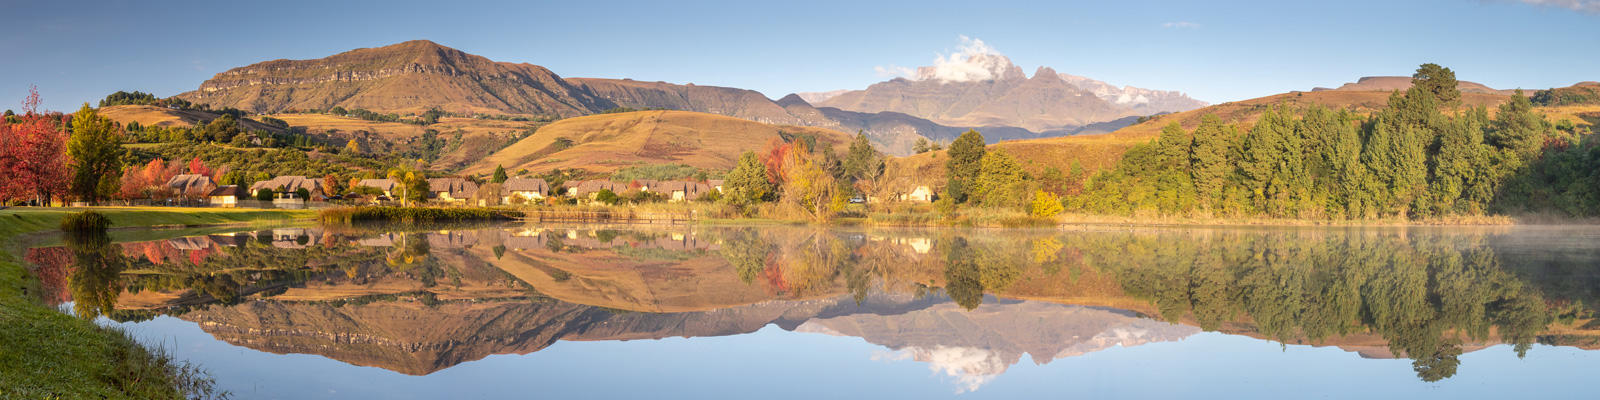 A view of the Drakensberg mountain range, which can be visited with a cheap Drakensberg holiday package from Flight Centre.